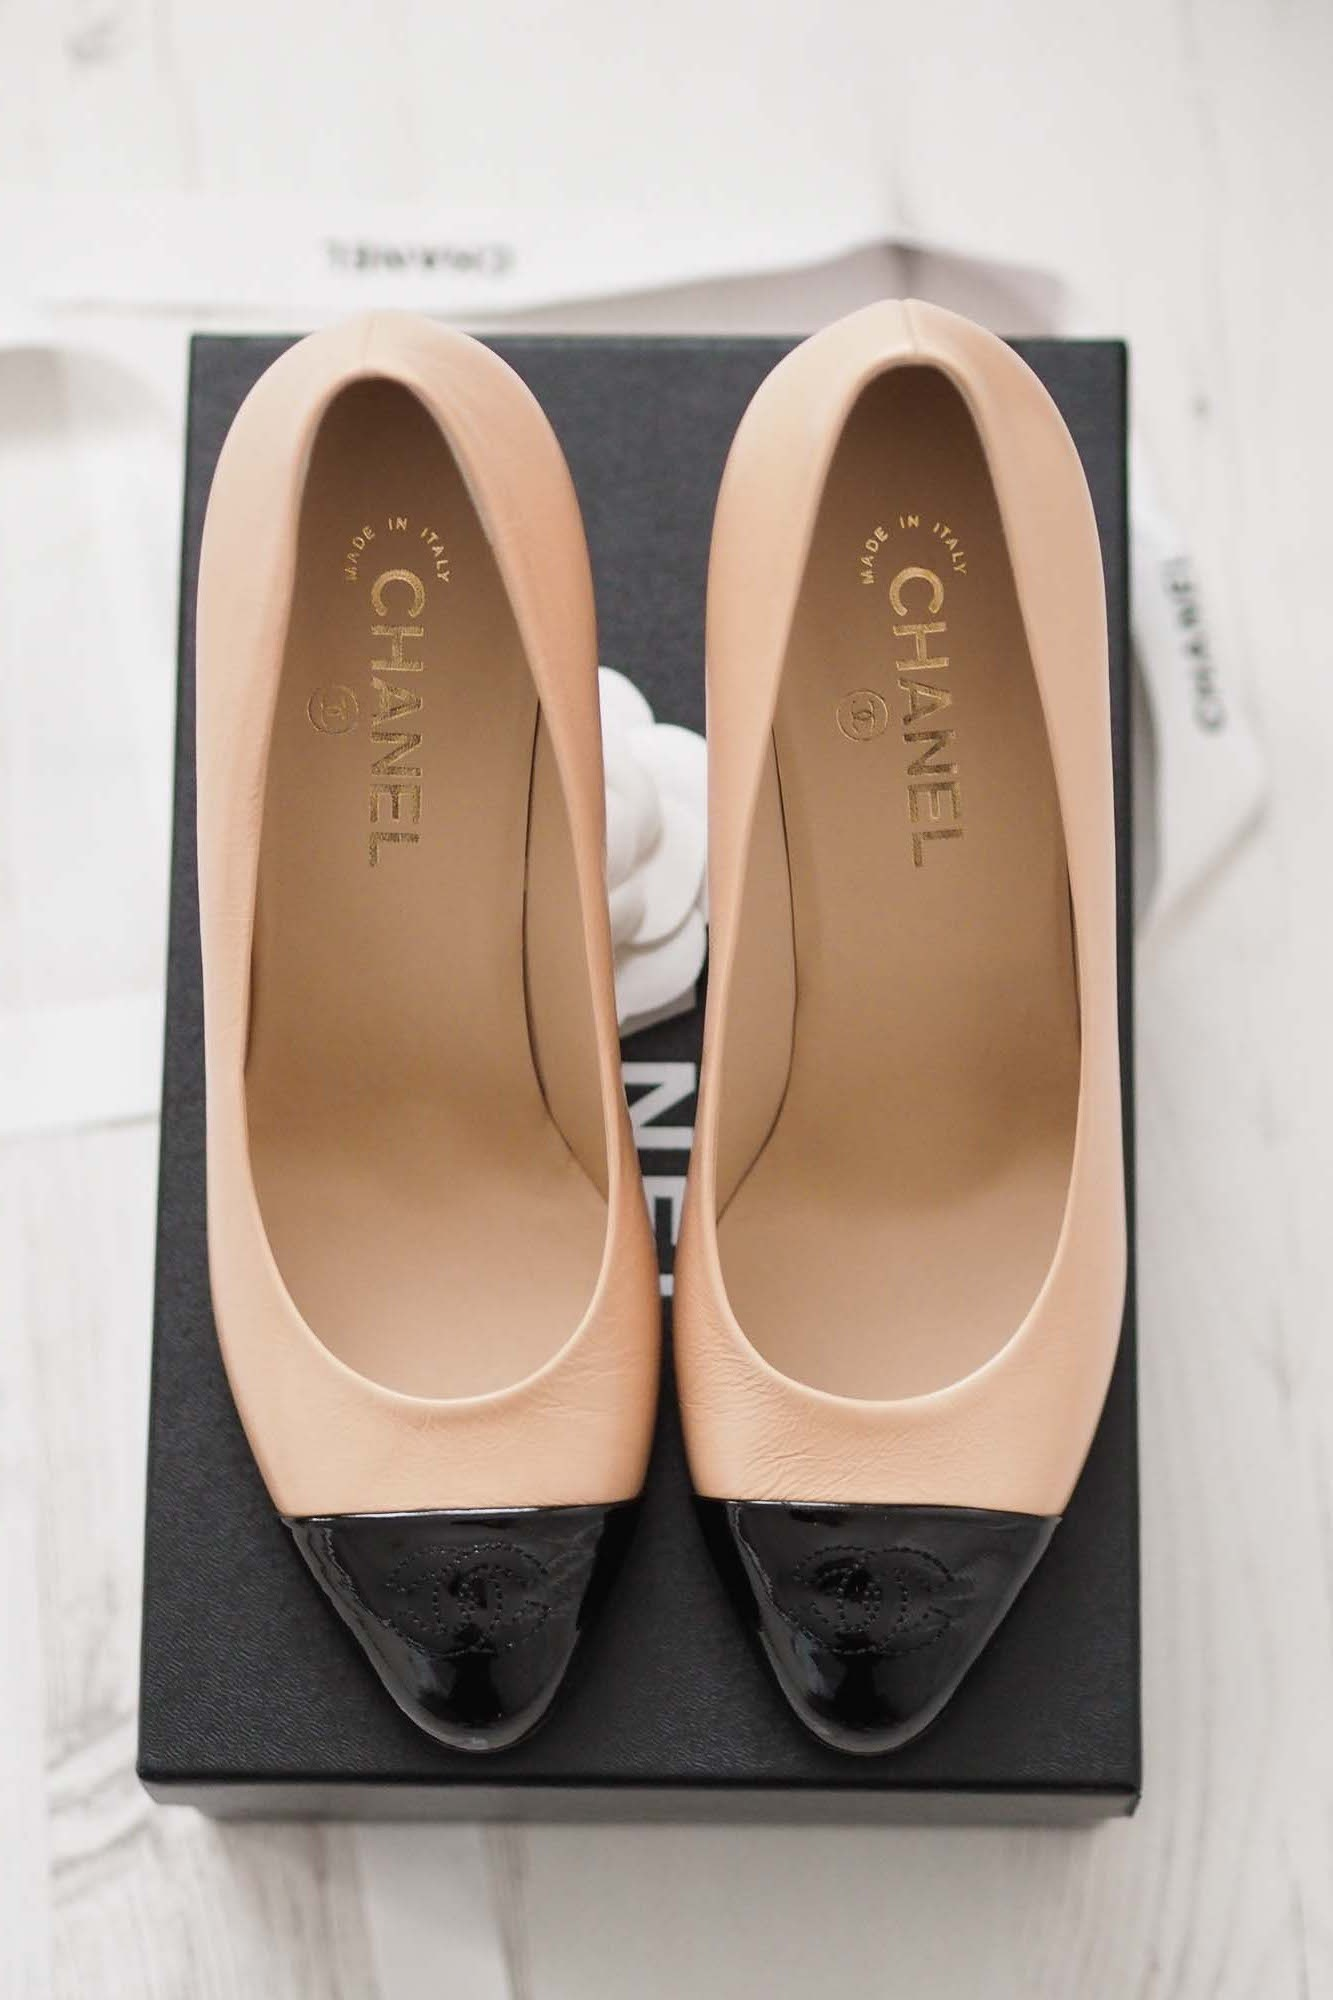 297b539a8 Chanel Beige Court Shoes £420 available in Chanel Boutiques Worldwide,  Harrods & Selfridges (subject to stock)